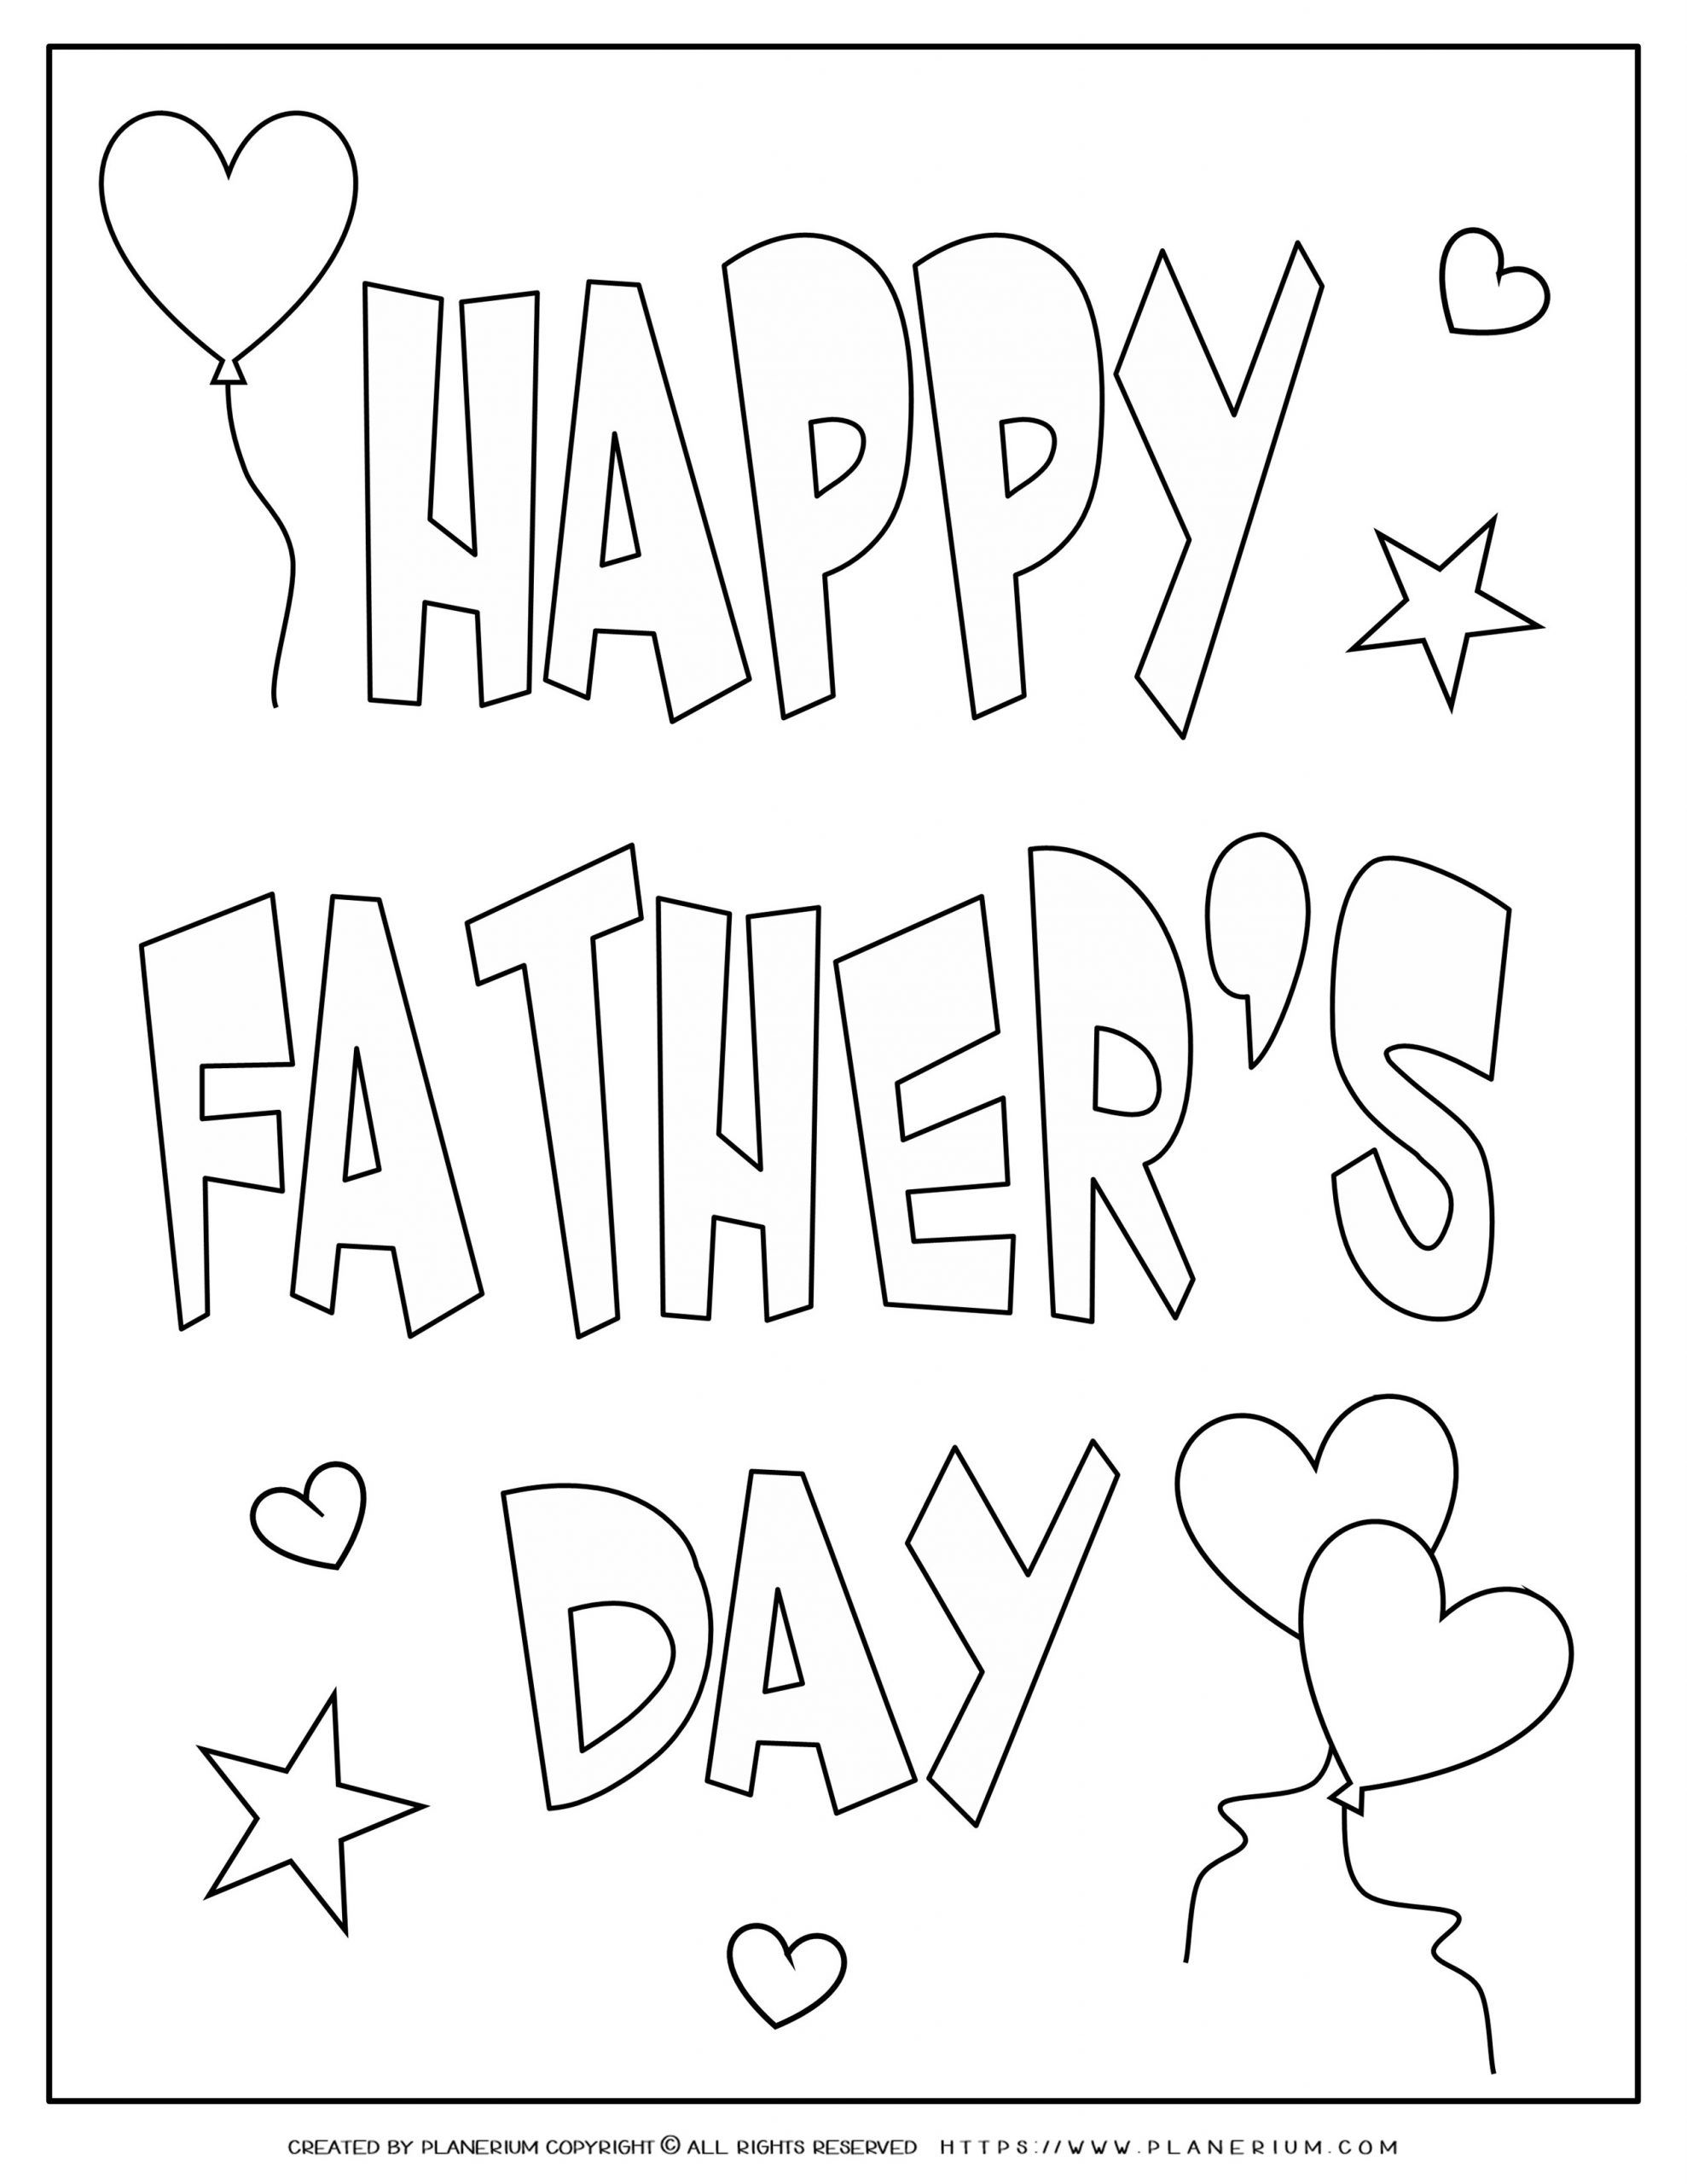 Pin on father's day cards